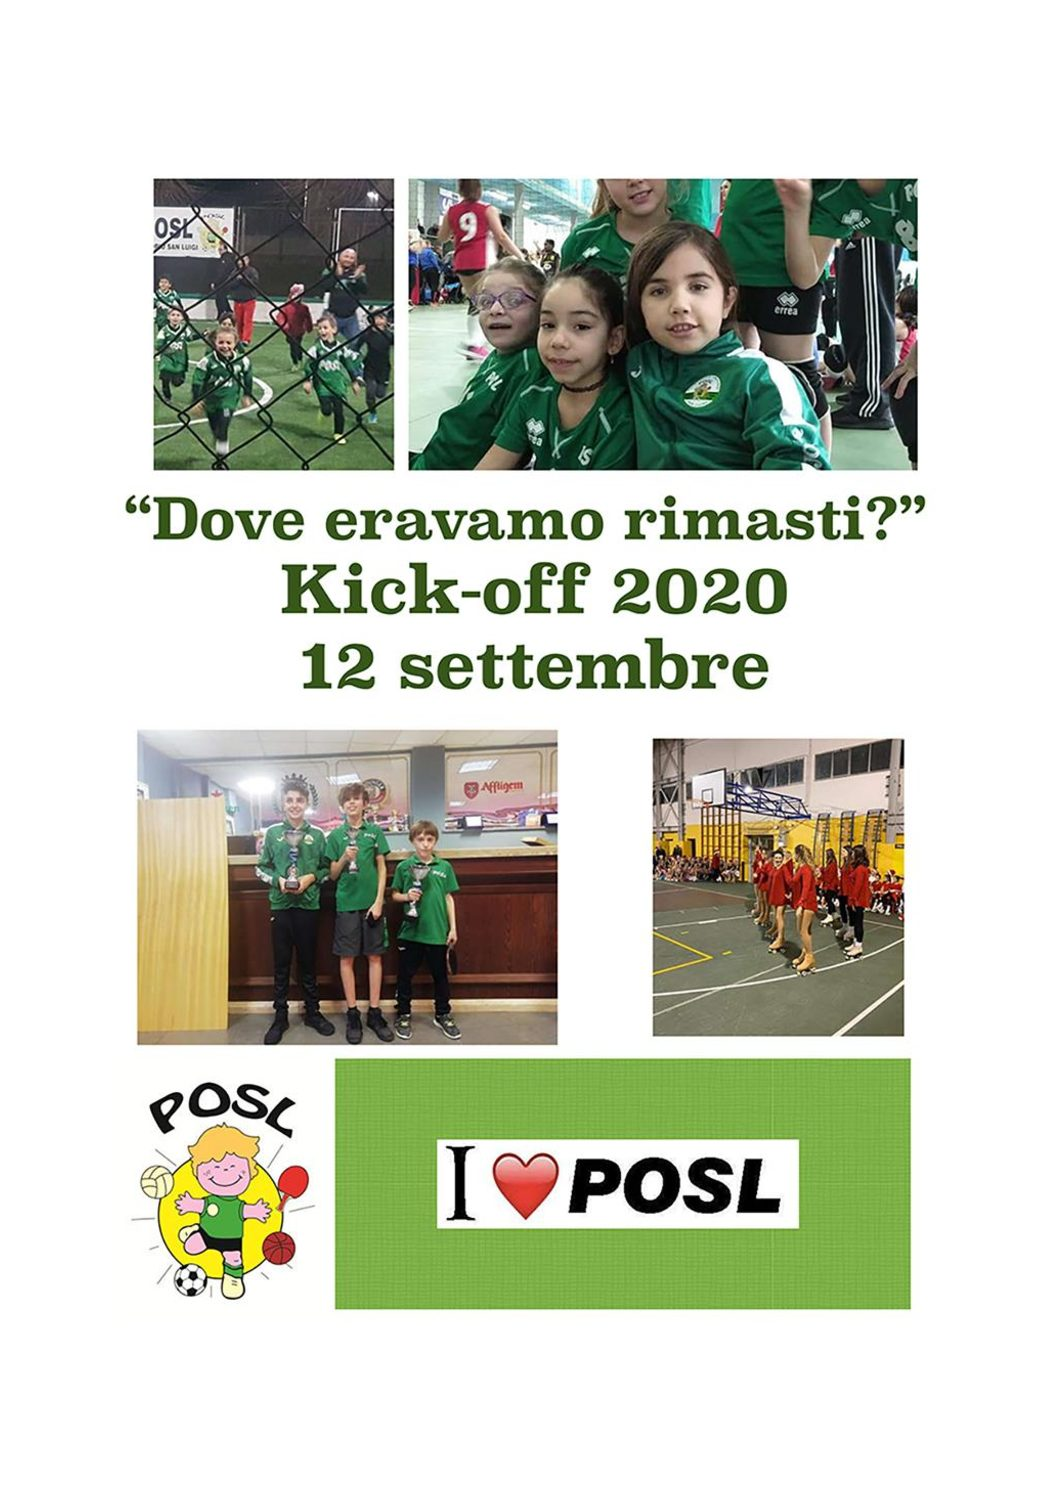 Kick Off 2020: dove eravamo rimasti?